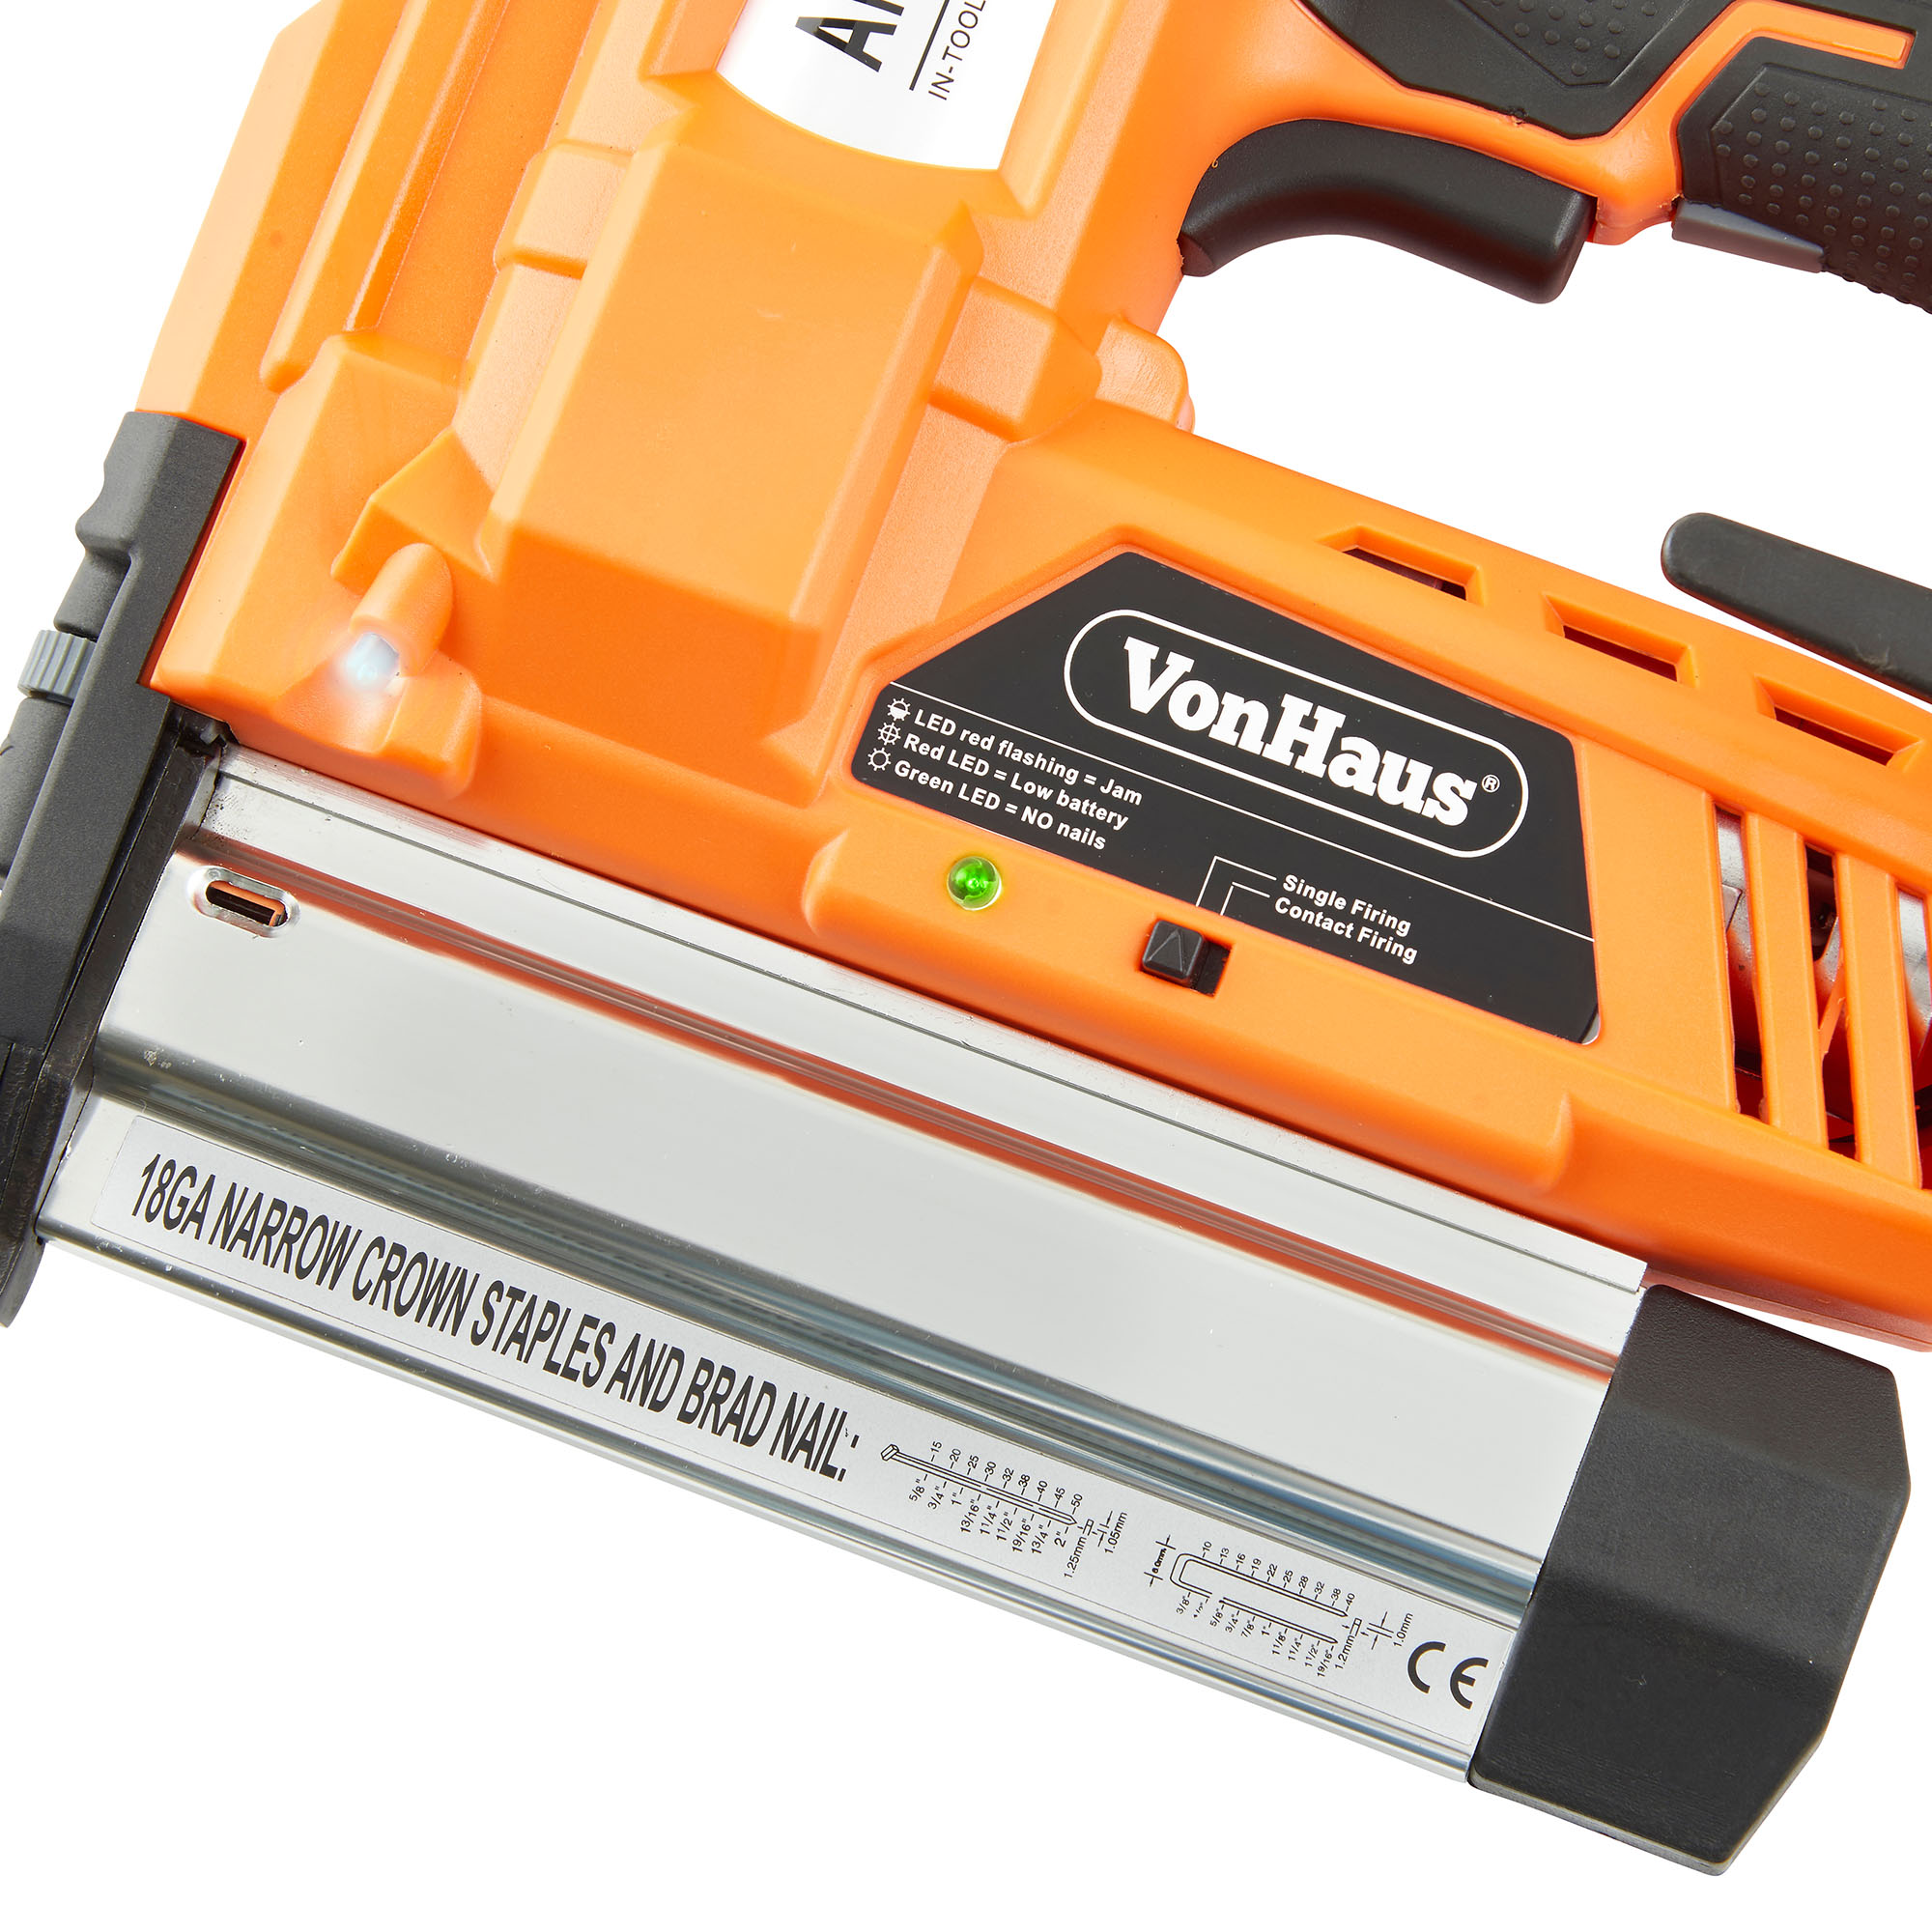 Vonhaus Cordless Electric Heavy Duty 2 In 1 Nail Amp Staple